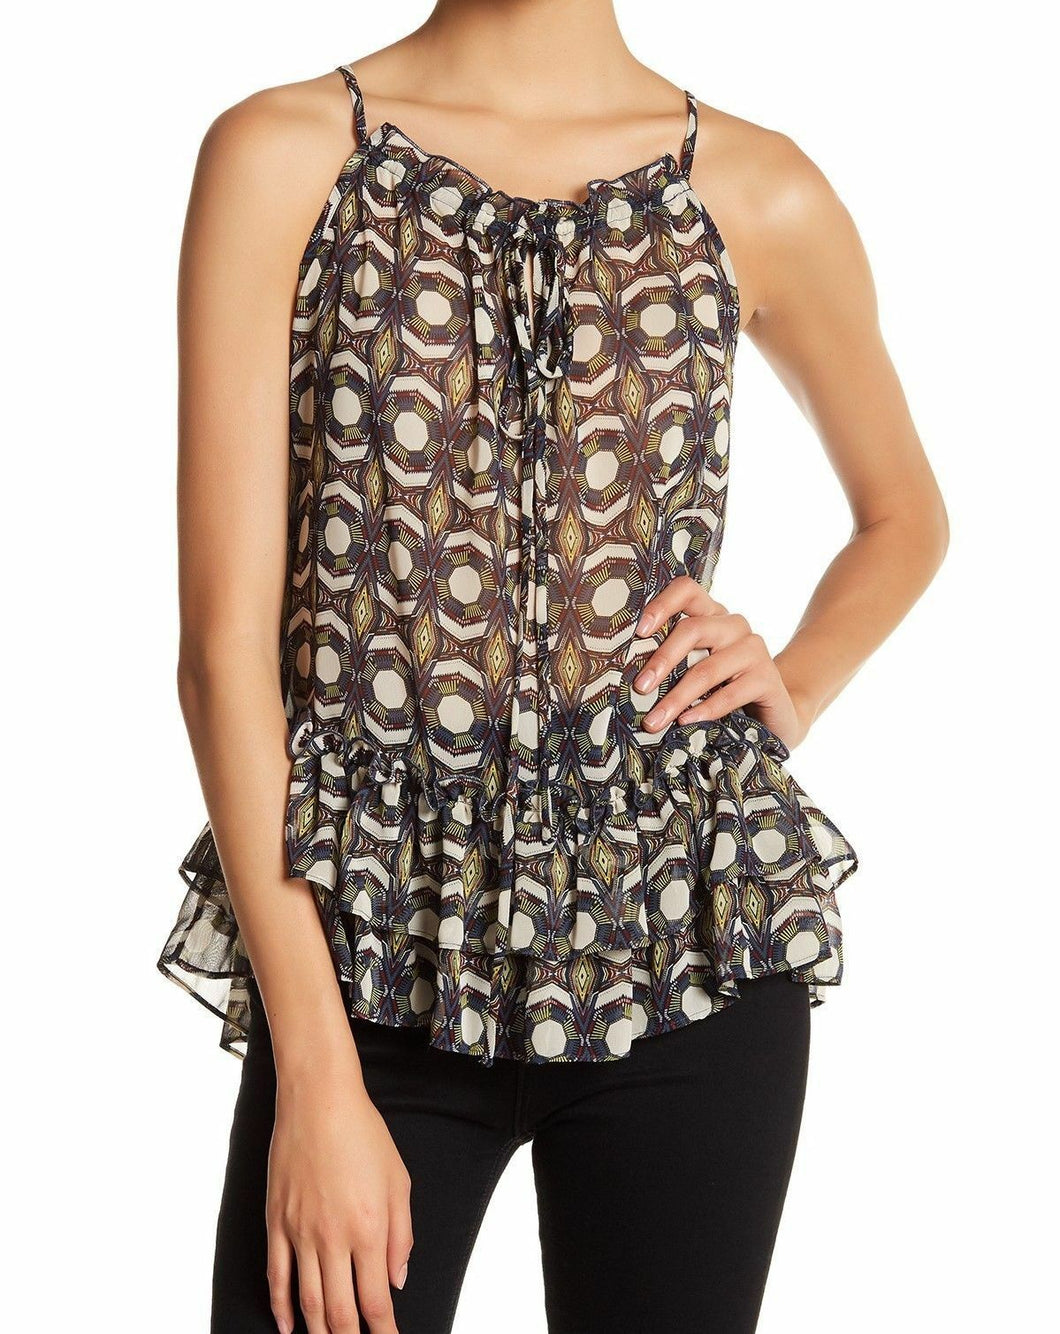 Ro & De Optical Medallion Ruffle Spaghetti Strap Cami Blouse - Small - $58 - NWT